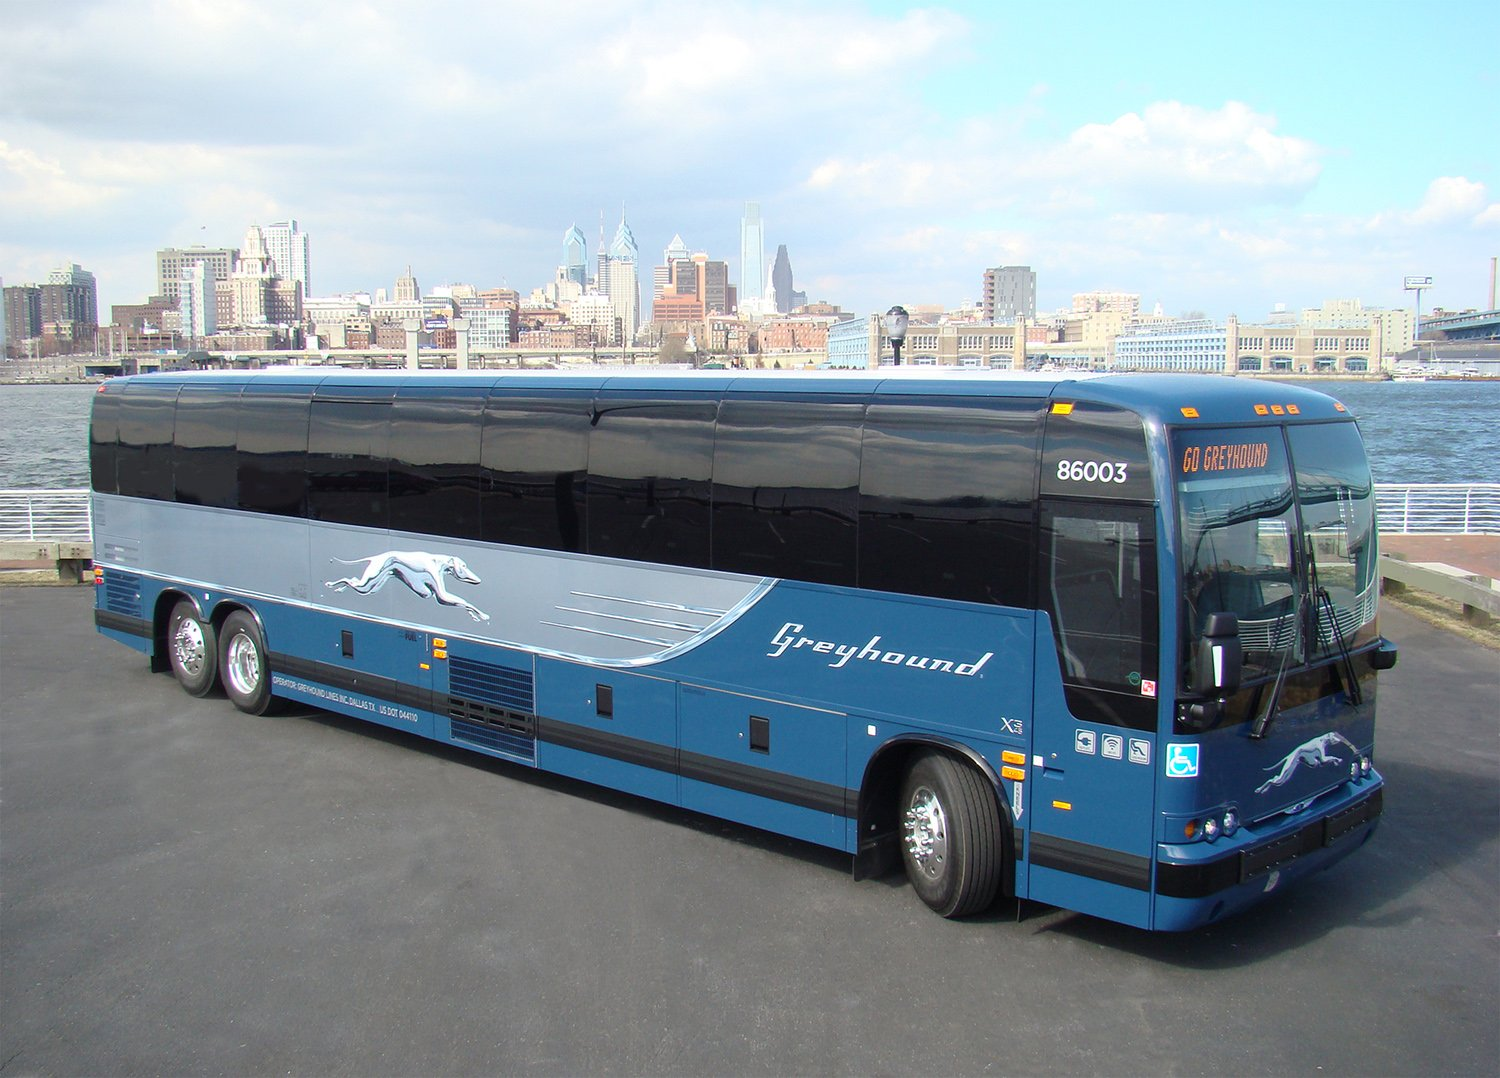 Discounted Greyhound bus tickets